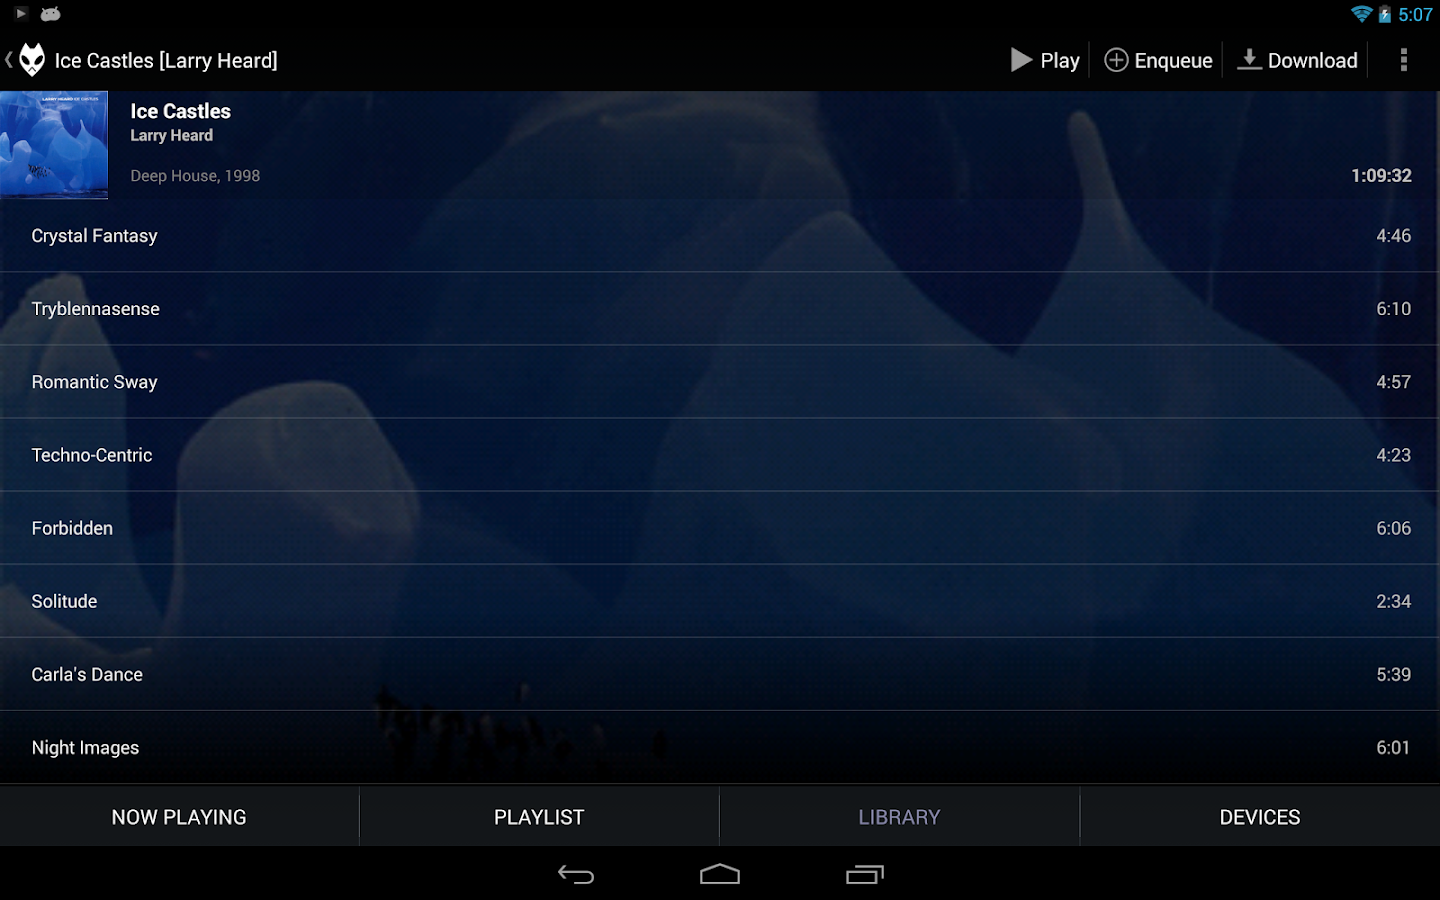 BubbleUPnP (Chromecast/DLNA) - screenshot